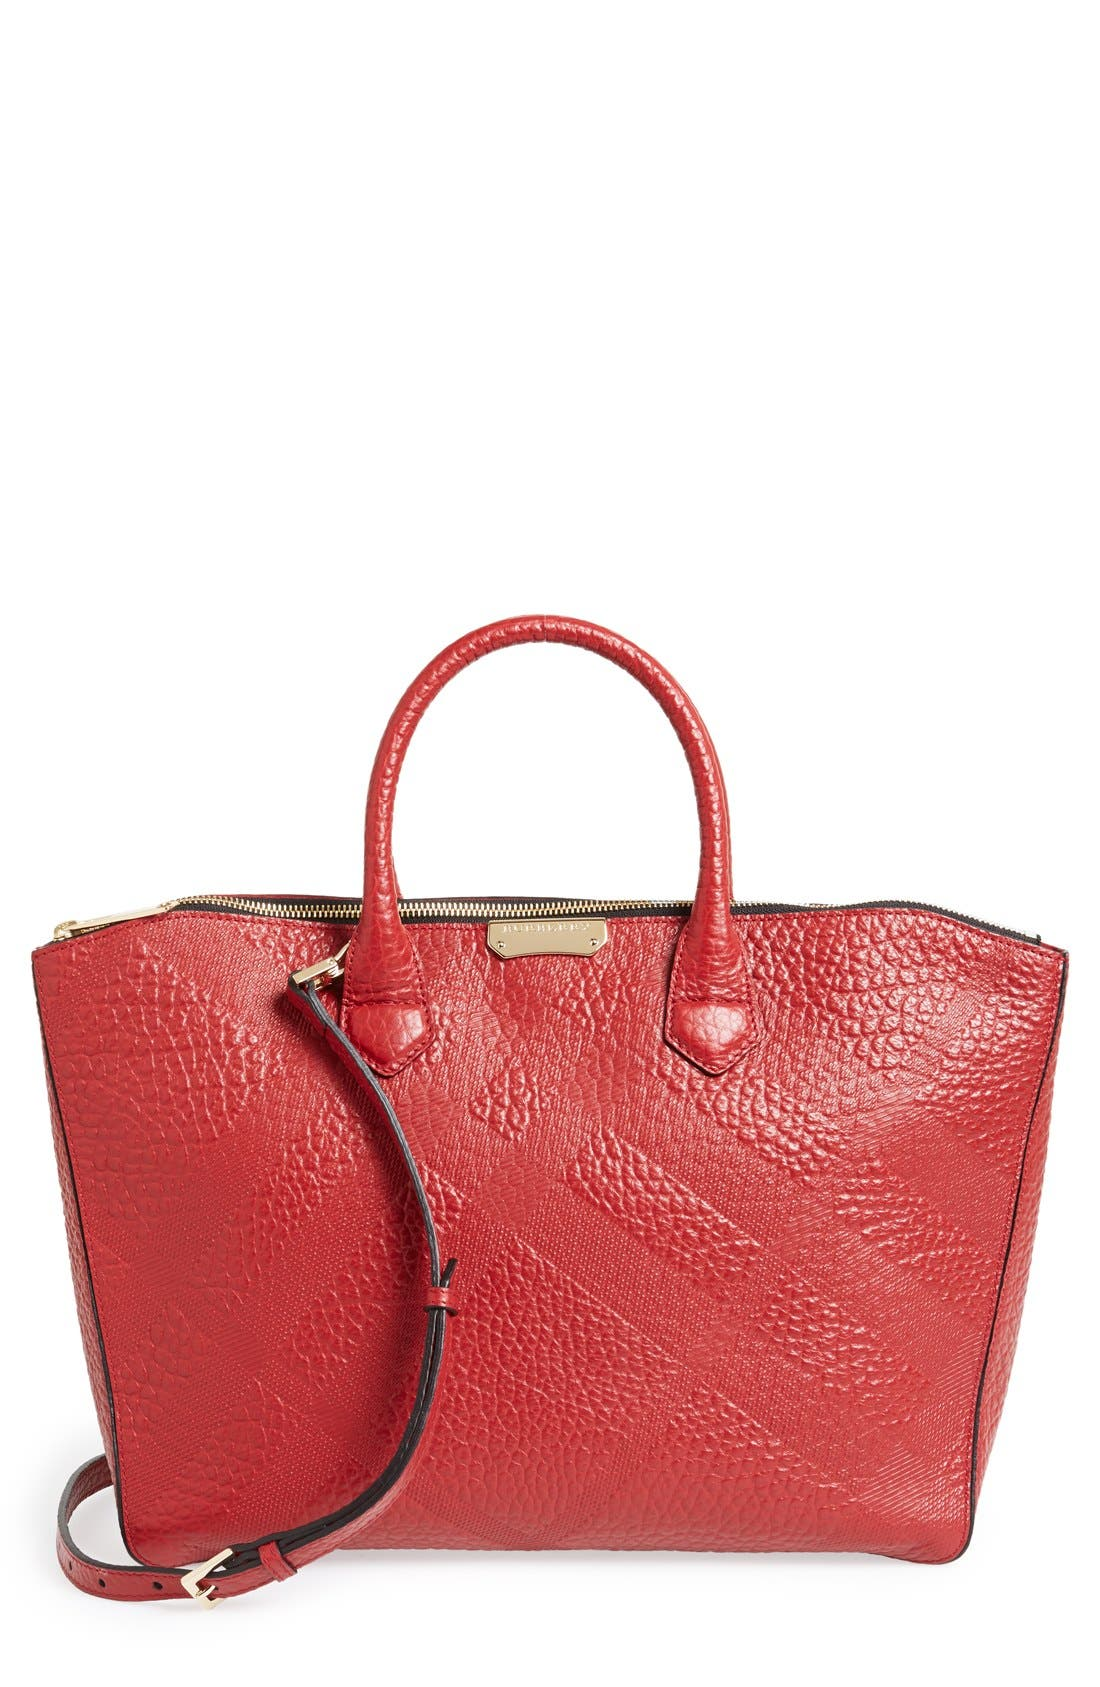 Alternate Image 1 Selected - Burberry 'Medium Dewsbury' Check Embossed Leather Tote